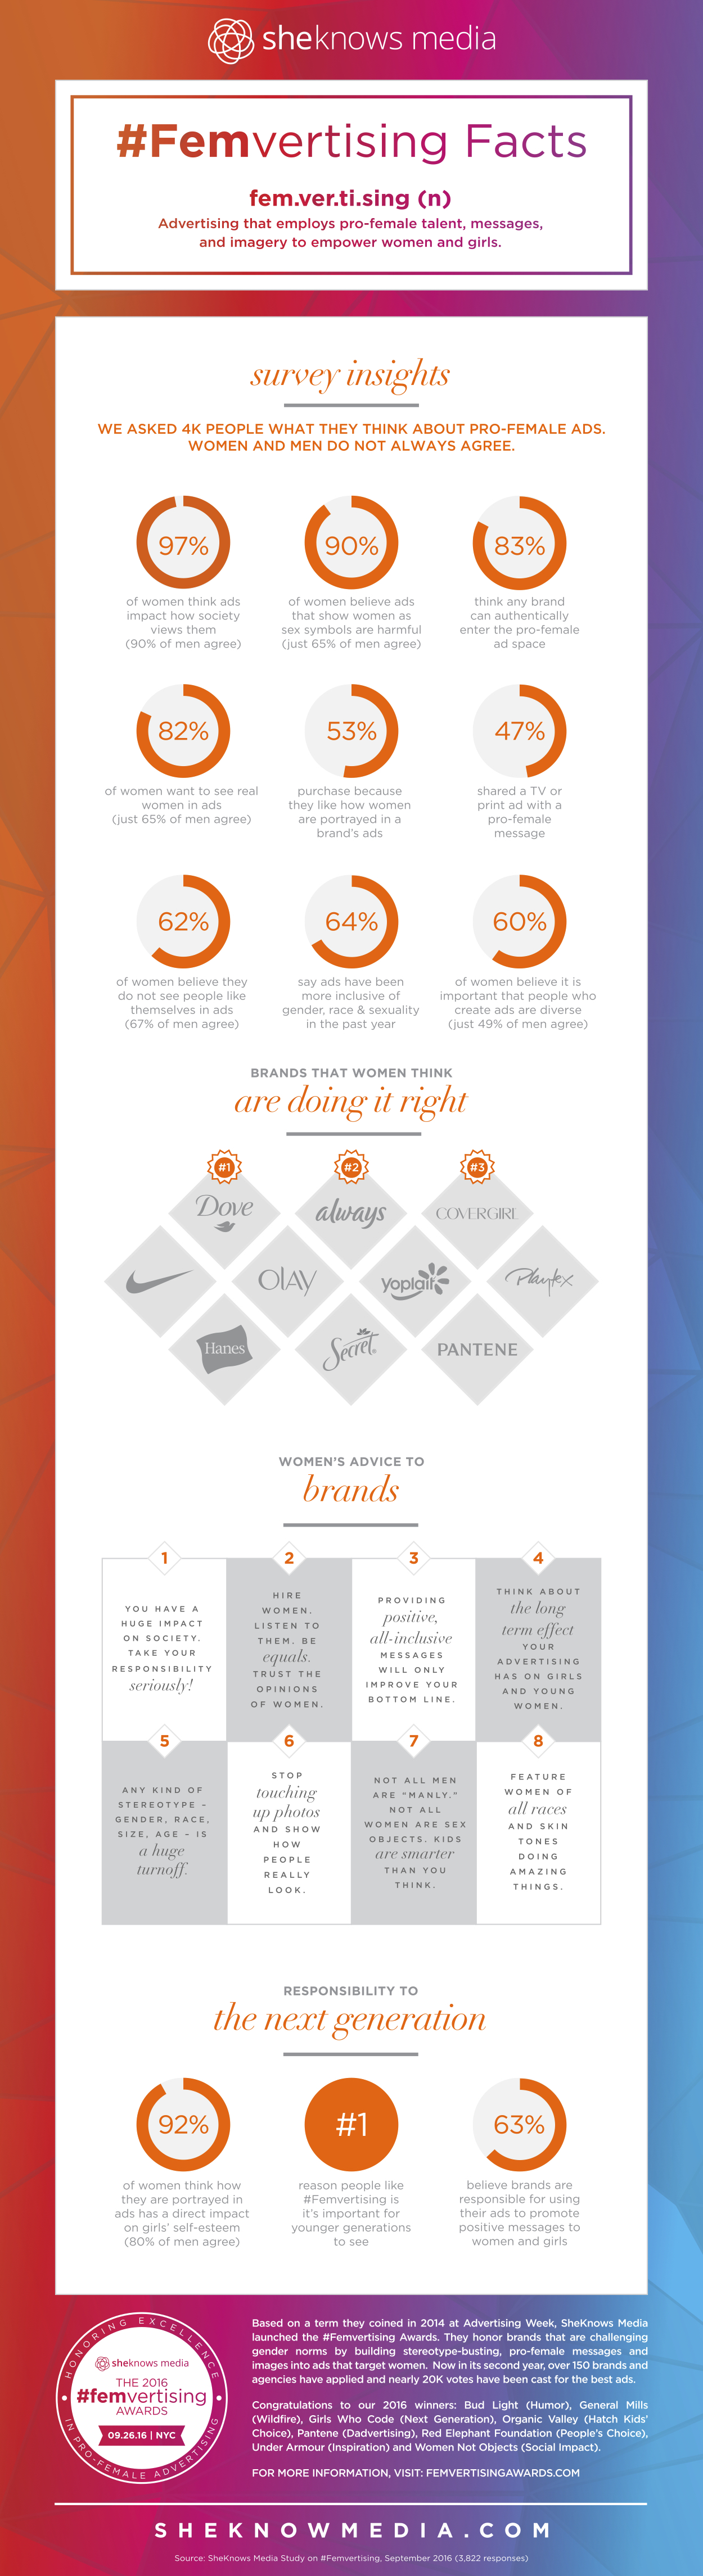 sheknows-media-femvertising-infographic-2016